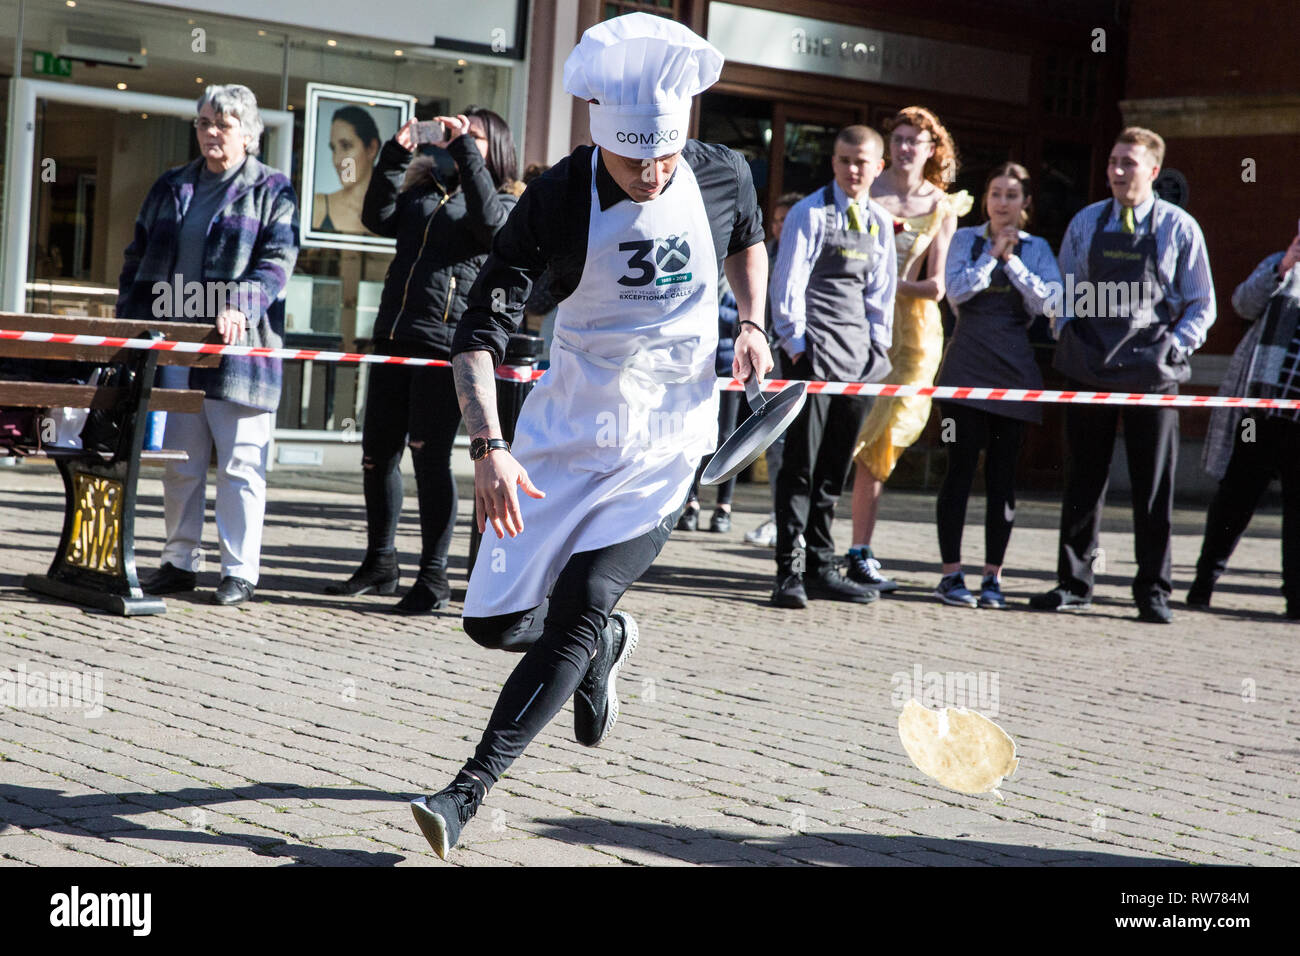 Windsor, UK. 5th Mar, 2019. Competitors in fancy dress on the theme of a '15th century housewife' from local businesses show off their flipping skills and fancy footwork as they take part in the 13th Windsor and Eton Flippin' Pancake Challenge on Shrove Tuesday in aid of Alexander Devine Children's Hospice Service and Windsor Homeless Project. Credit: Mark Kerrison/Alamy Live News - Stock Image